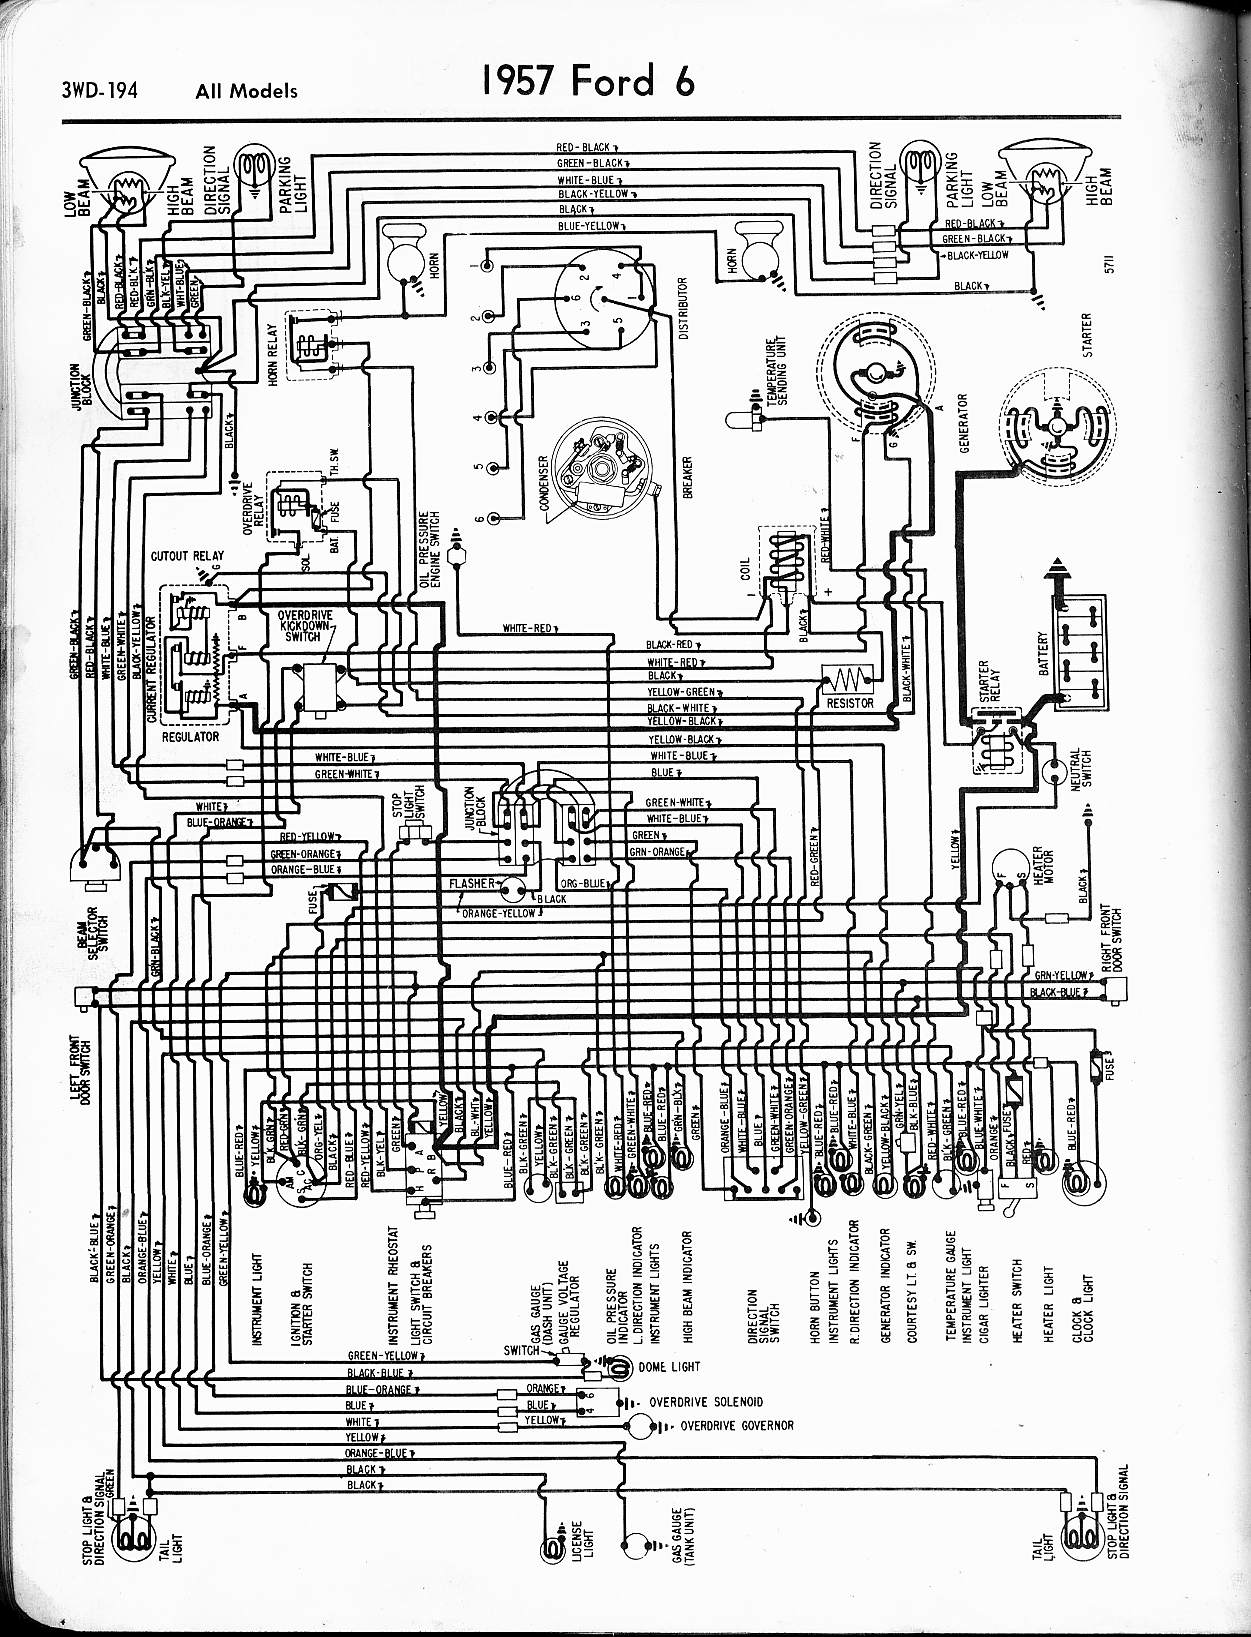 Ford Msd Ignition Wiring Diagram 6 1957 Thunderbird Reinvent Your Diagrams Rh Wizard Com Chevy